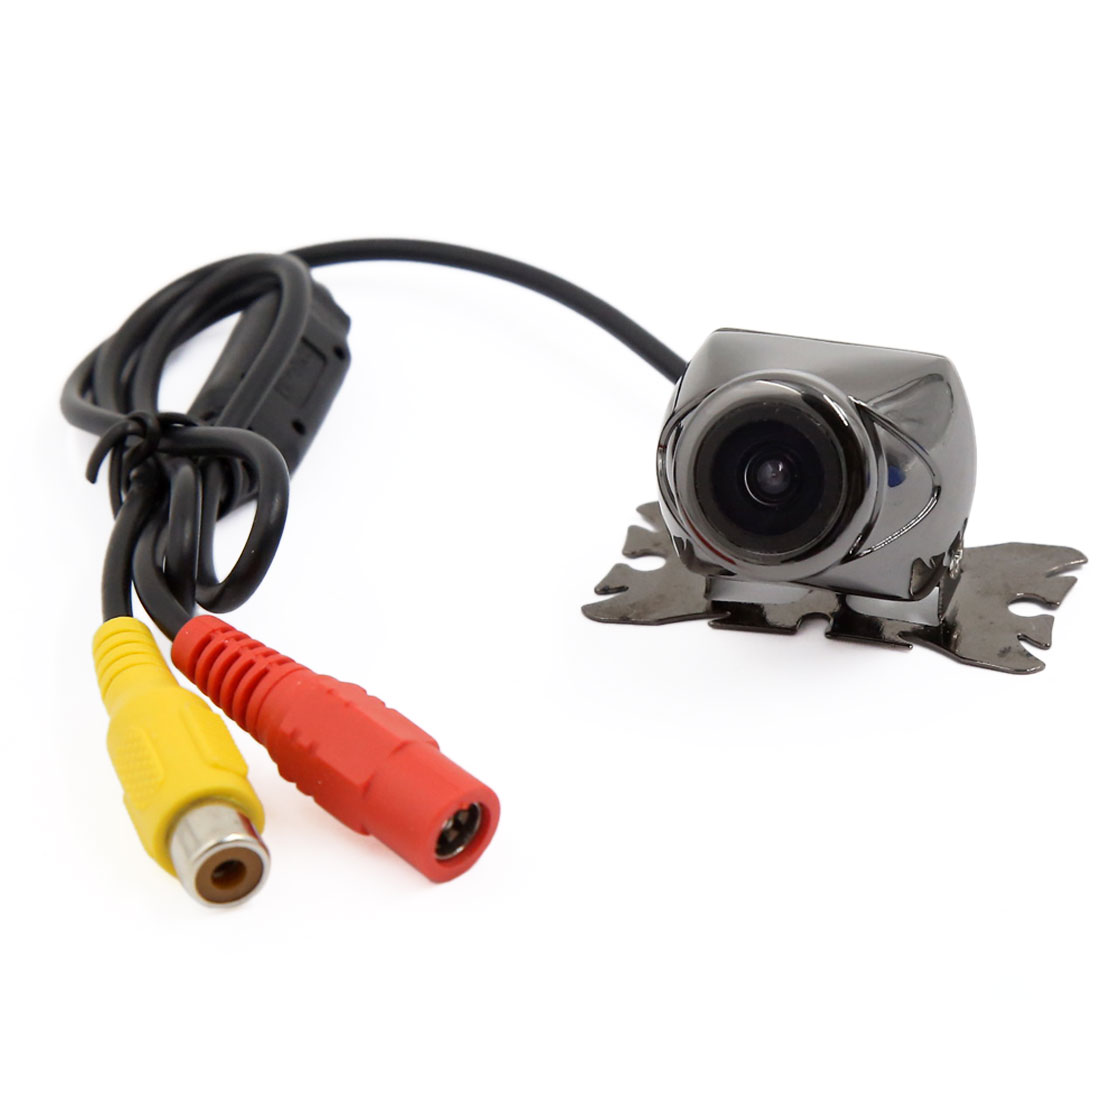 Waterproof 480 TV Lines 120 Degree Car Rear View Reverse Camera for Monitor